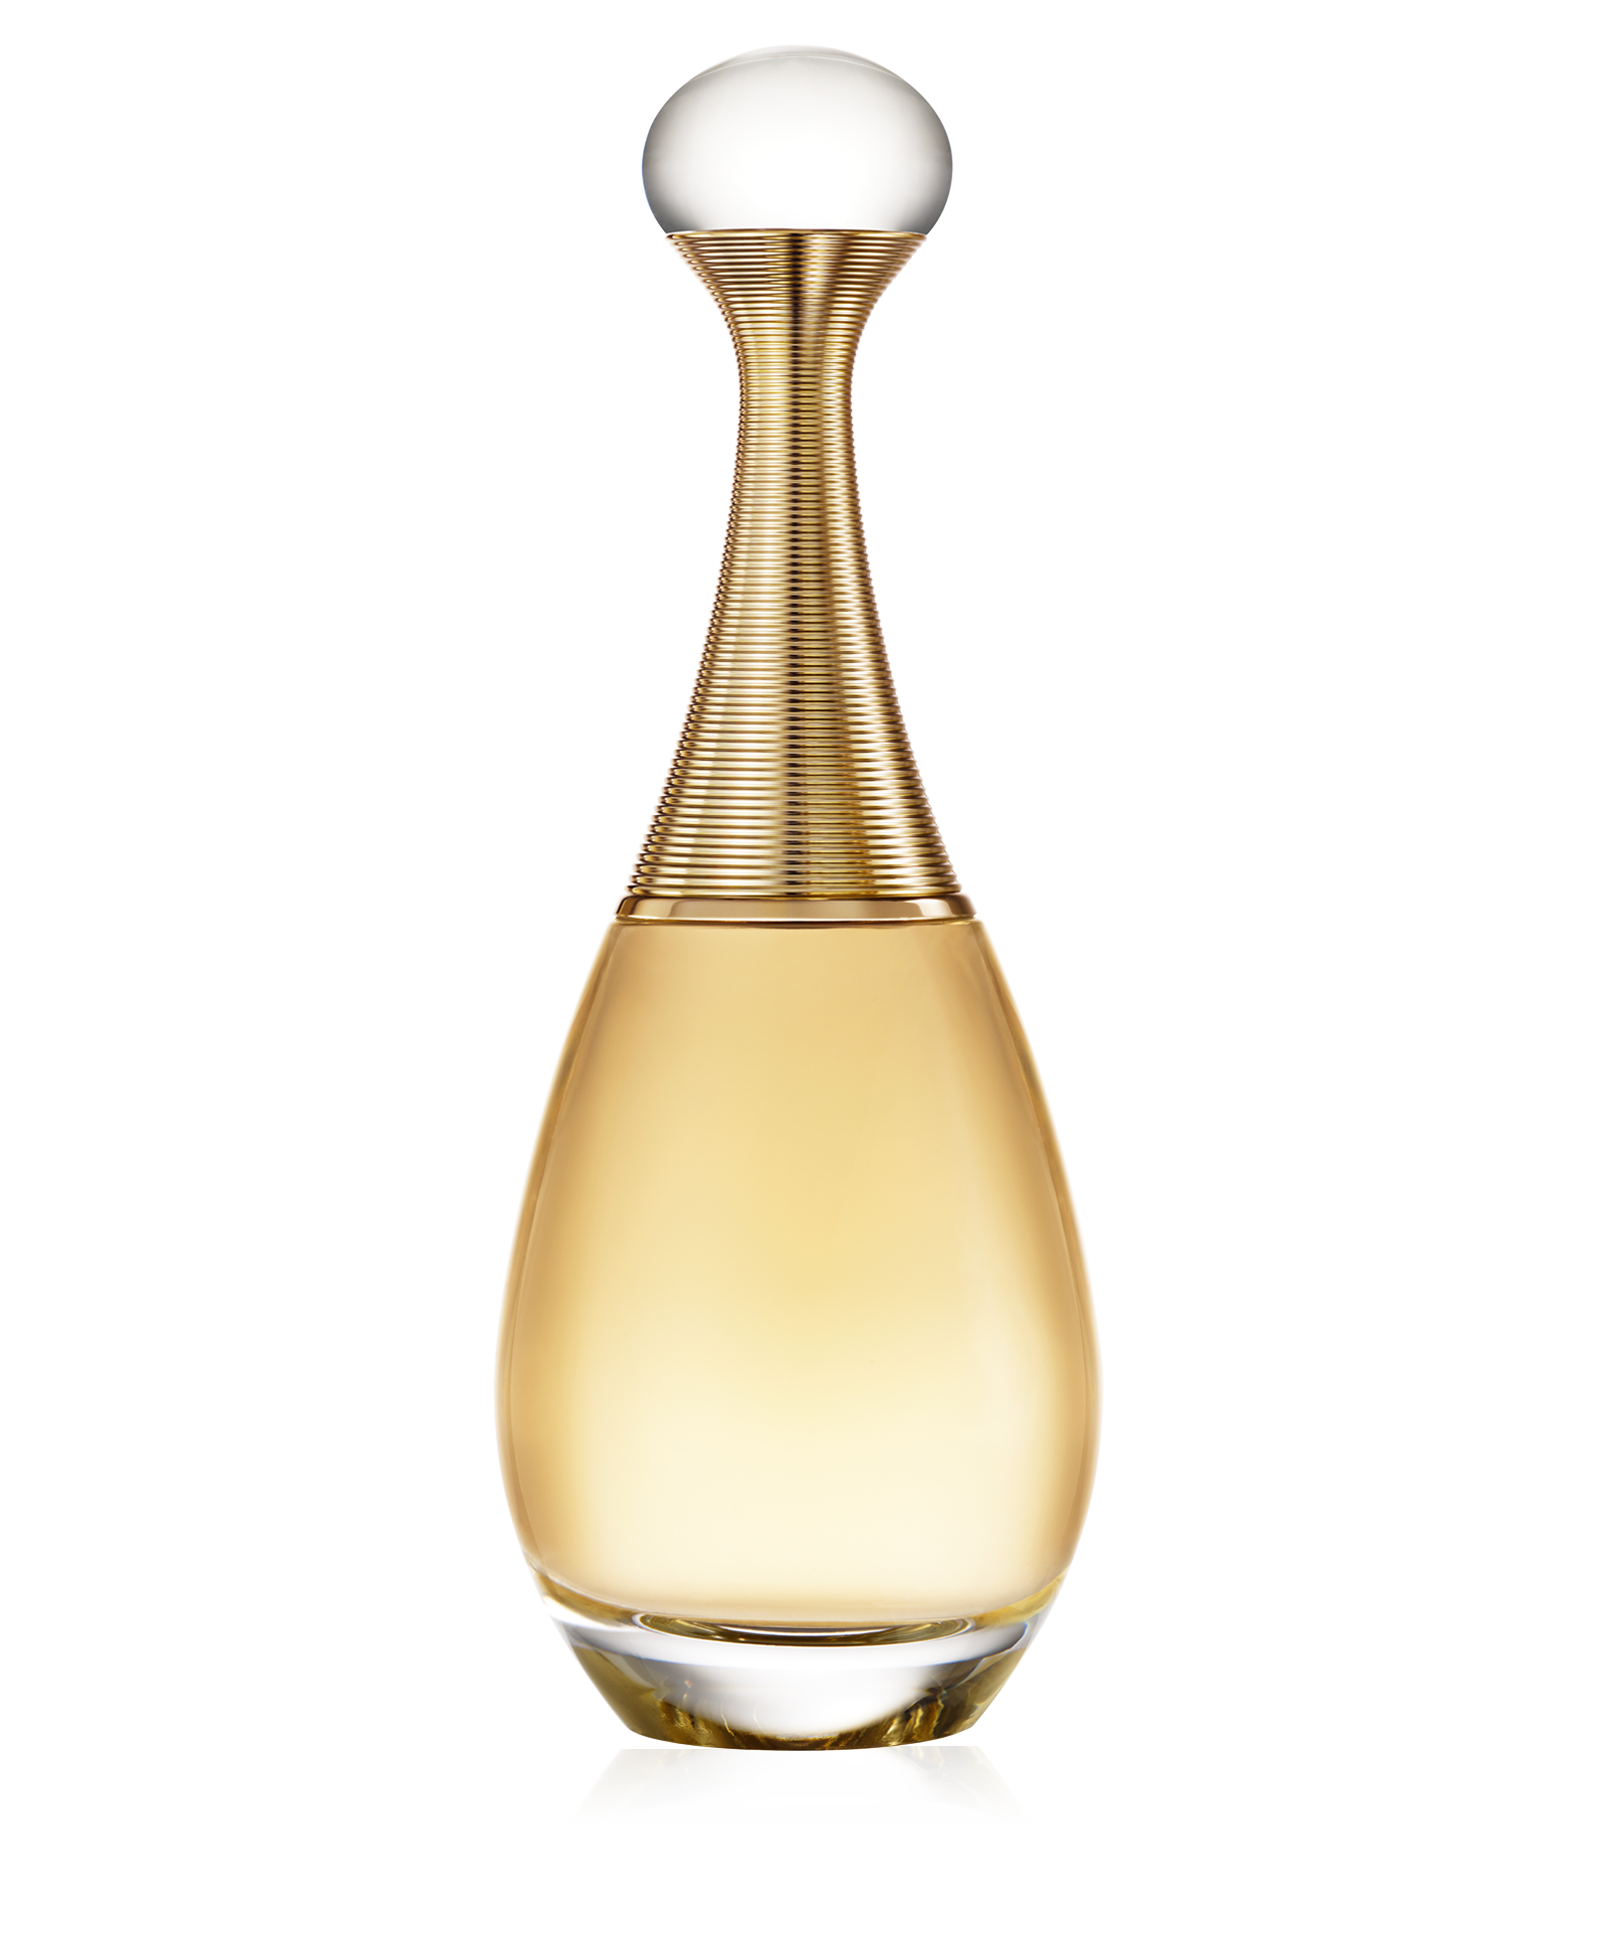 Women perfume png. Clipart clip art library